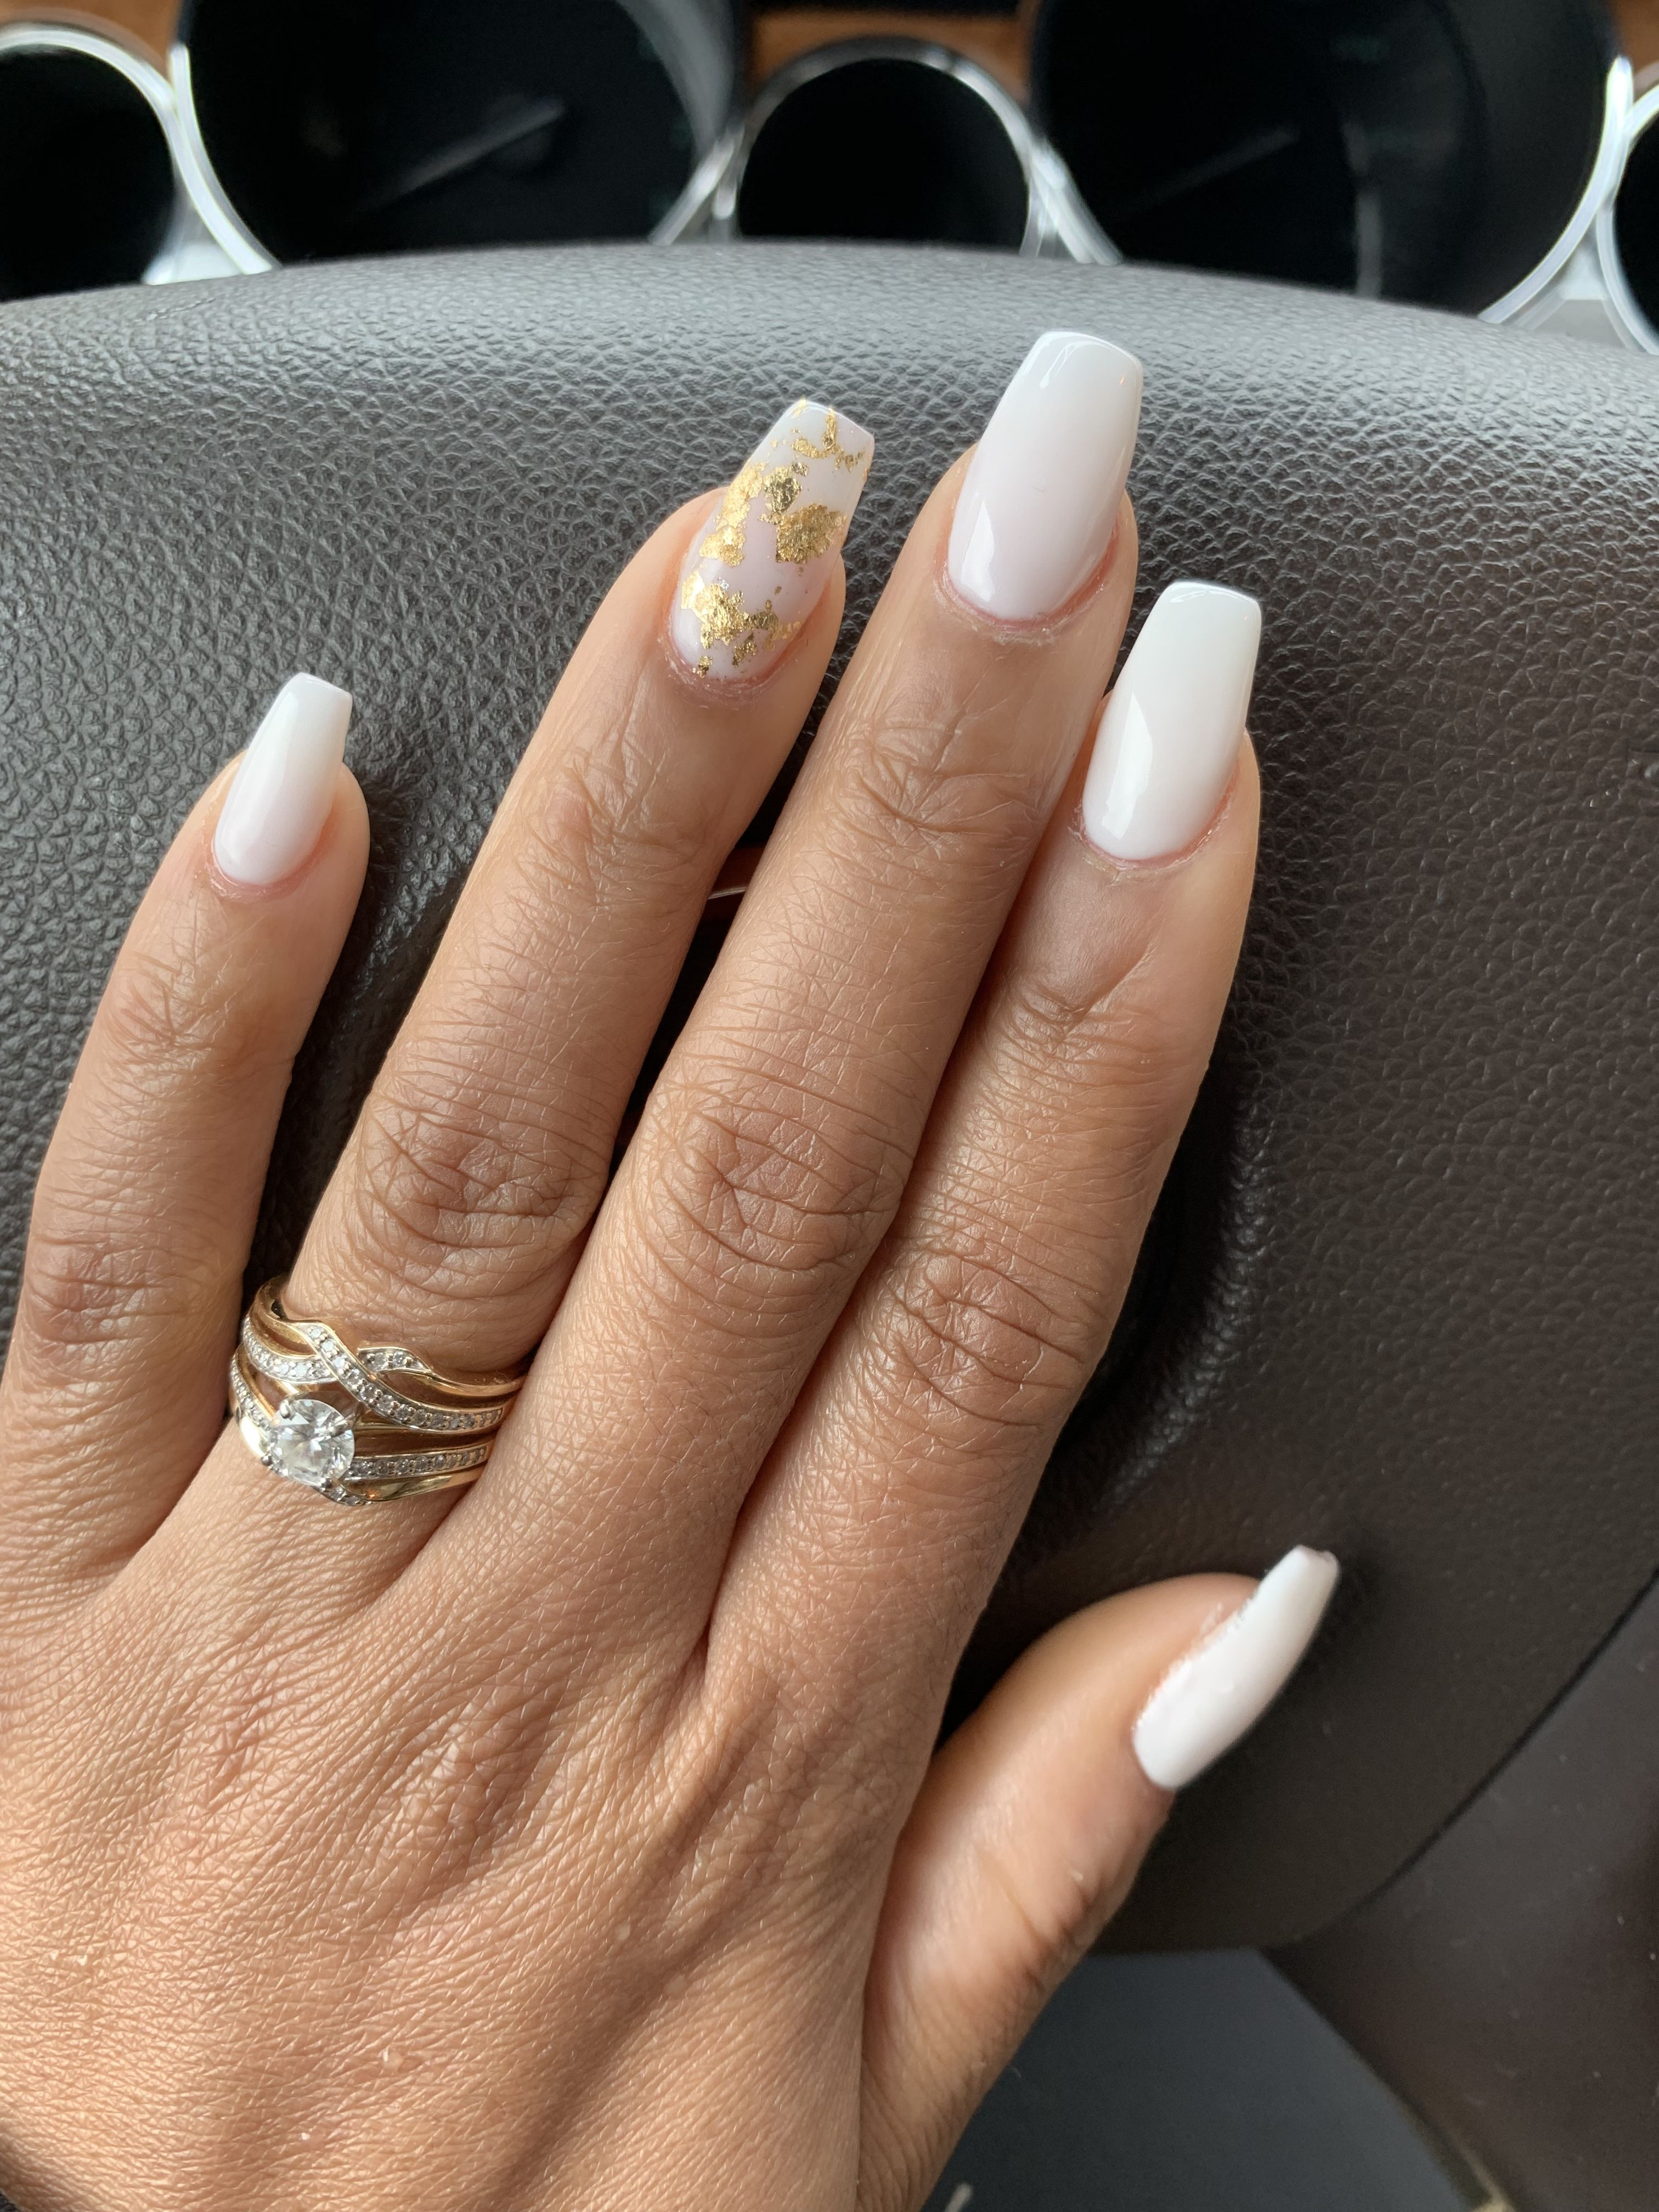 Soft White Acrylic With Gold Flakes Perfect For Spring And Summer Acrylicoverlay Naturalnails Sum White Nails With Gold Gold Nails Prom Gold Acrylic Nails